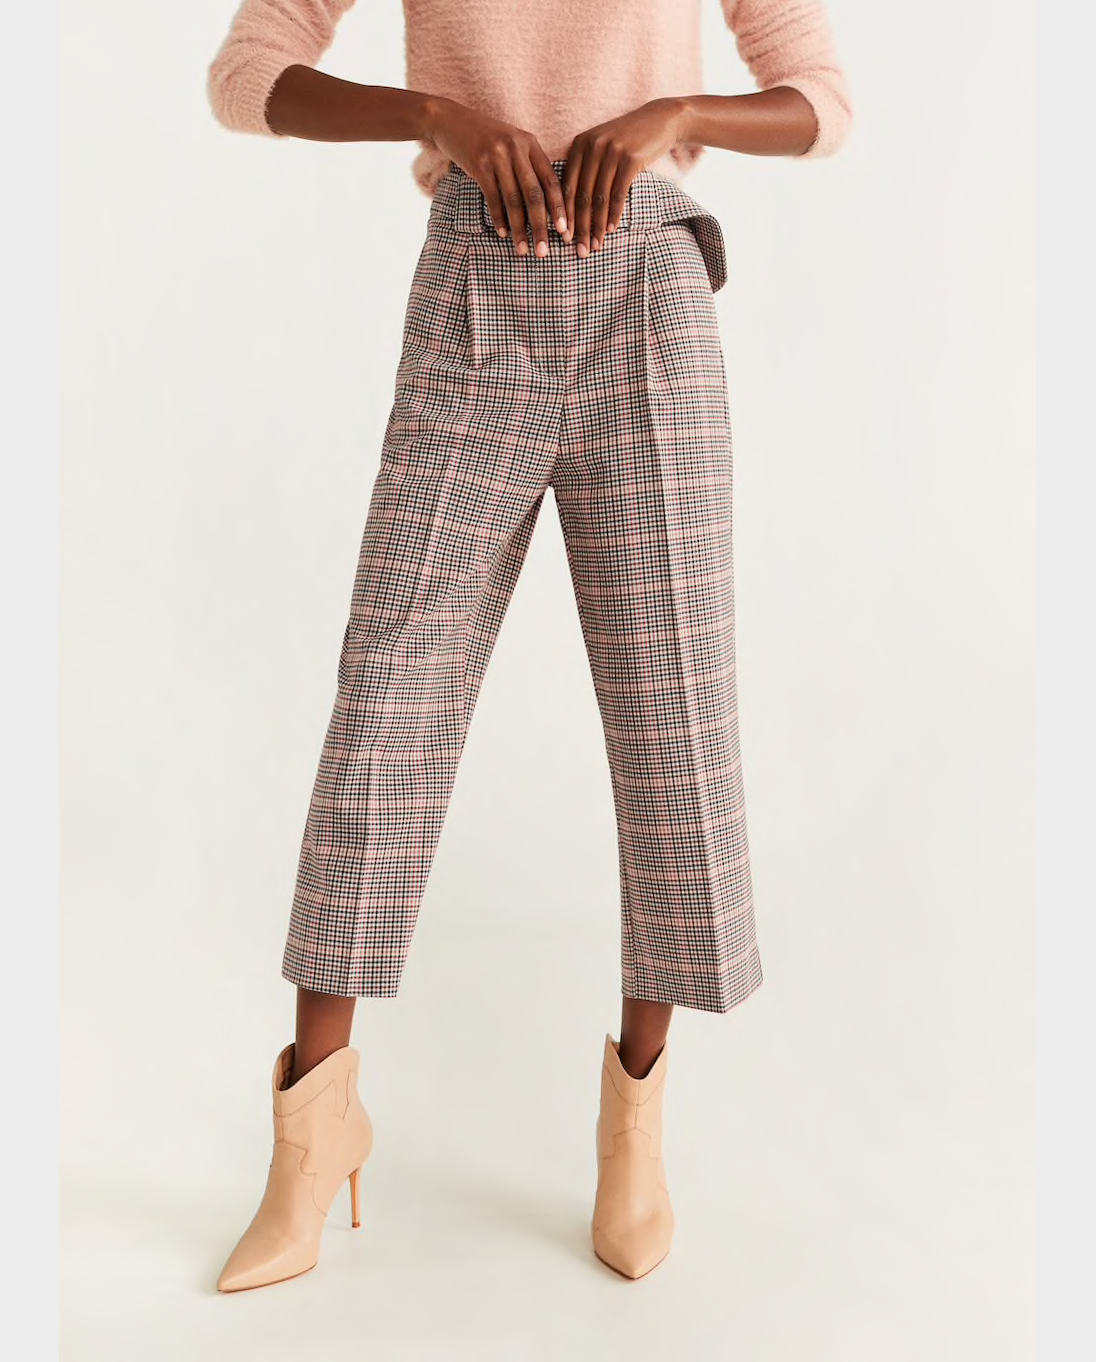 Mango Houndstooth Pants.png